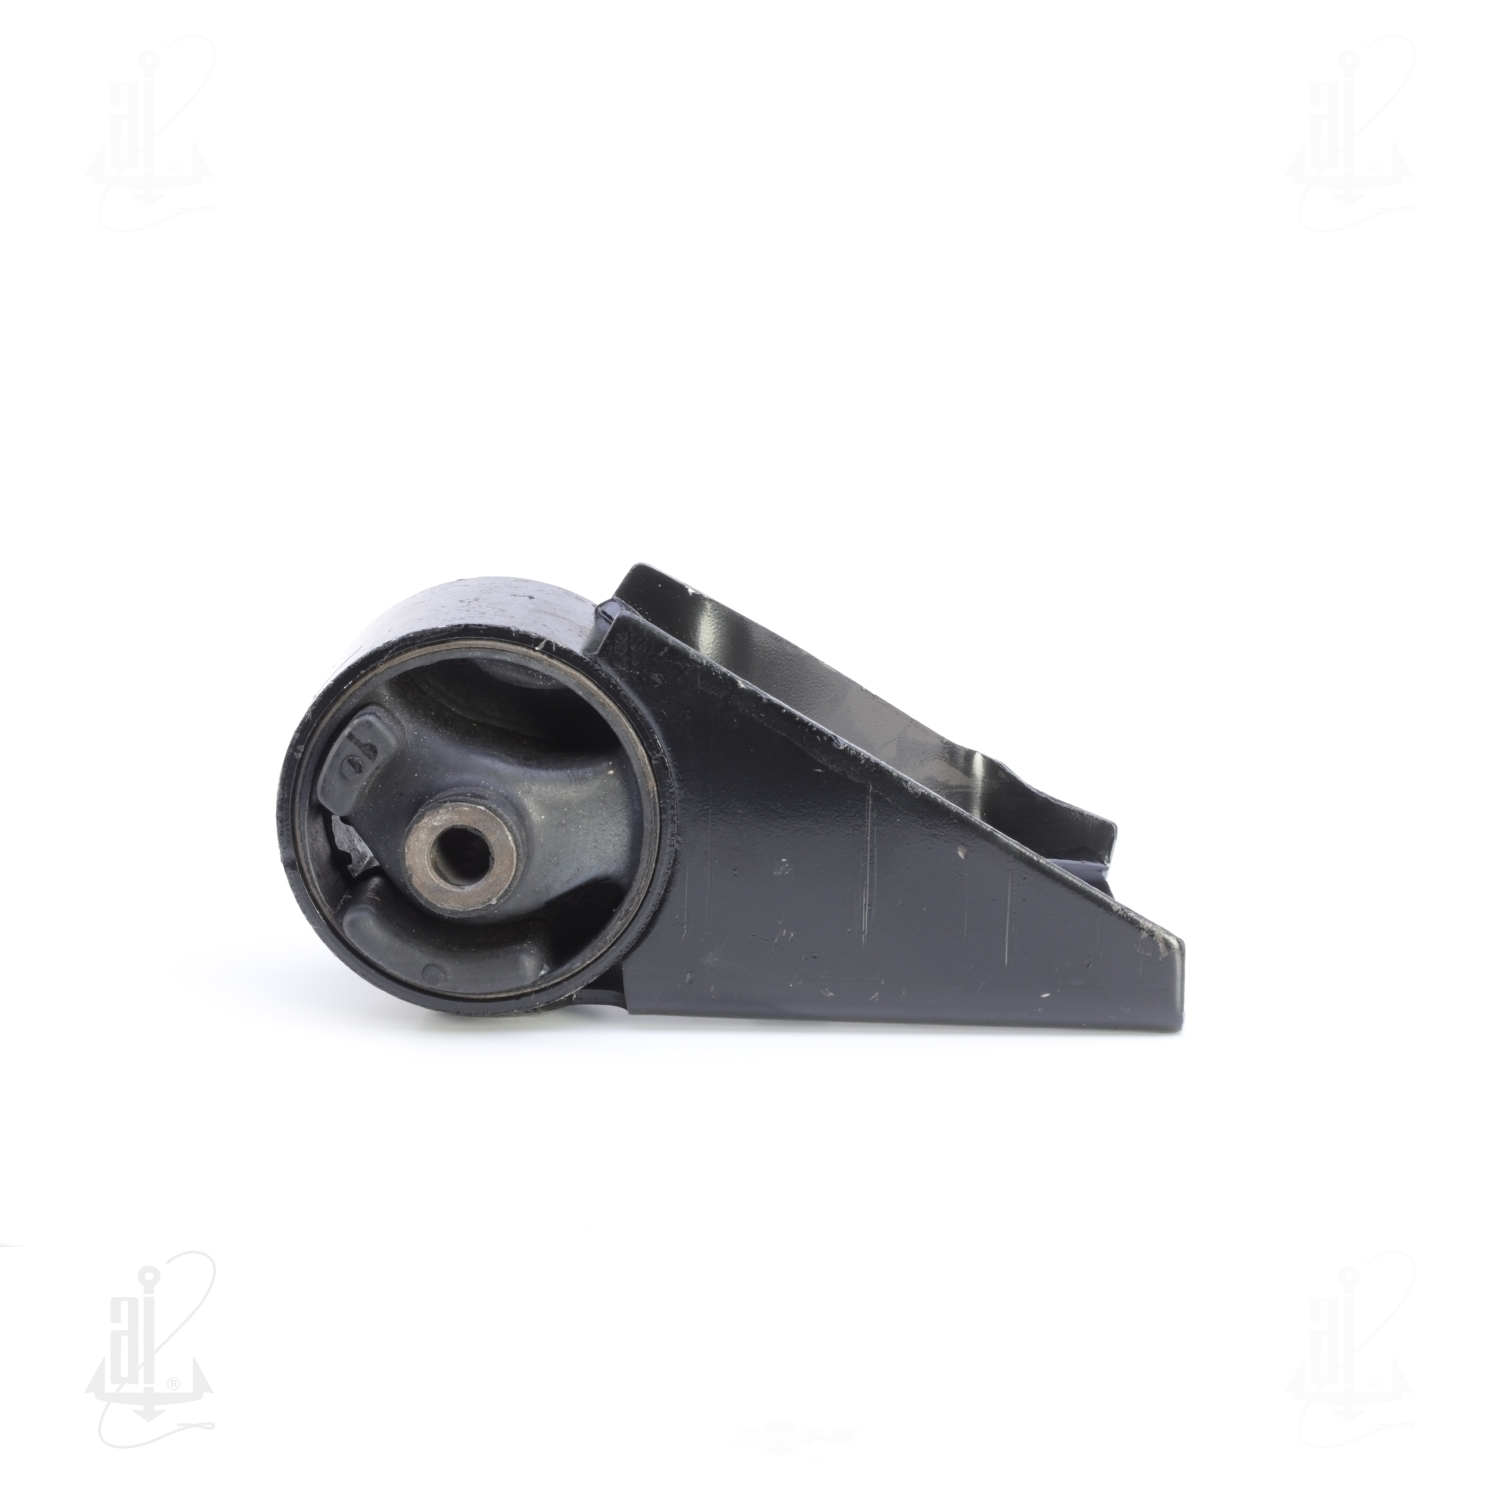 Anchor Motor Mounts 8908 - Transmission Mount - 8908